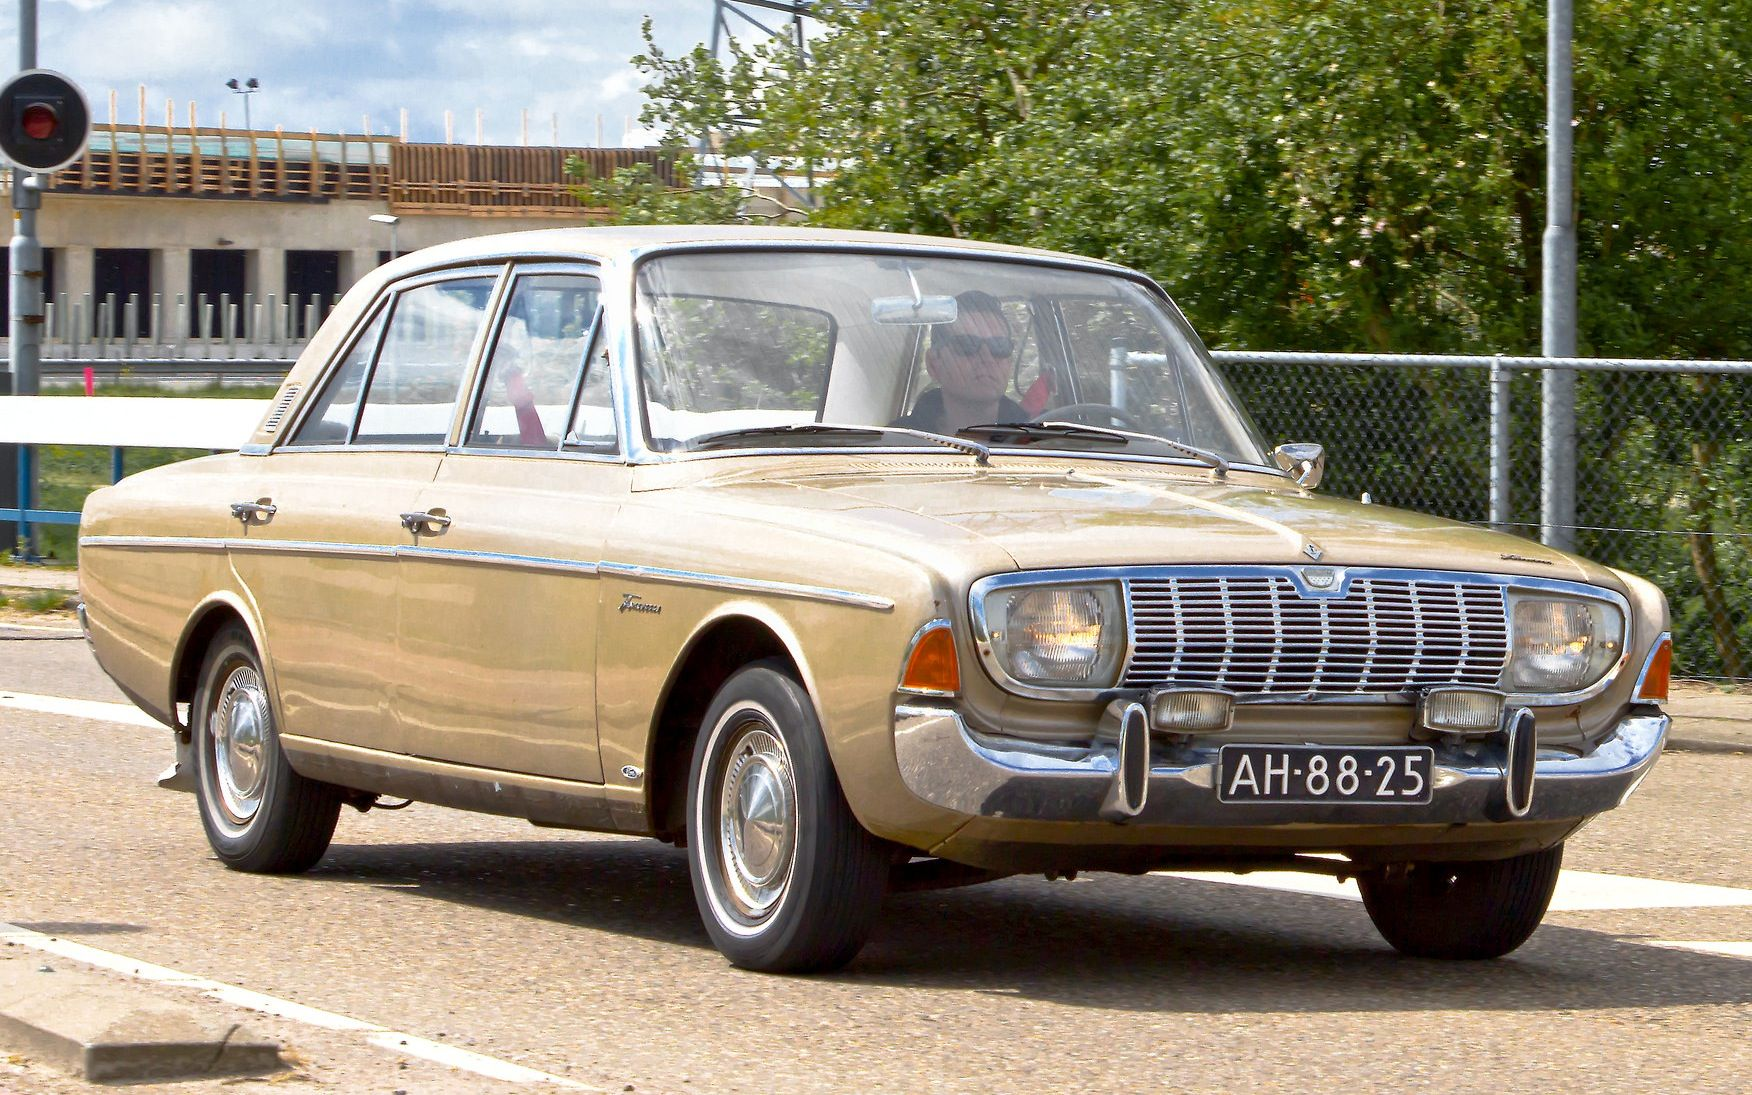 1966 Ford Taunus 20m Ts P5 Linousine 2 0l Ford Cologne V6 100bhp Engine Photo By Clay Oldtimer Autos Oldtimer Youngtimer